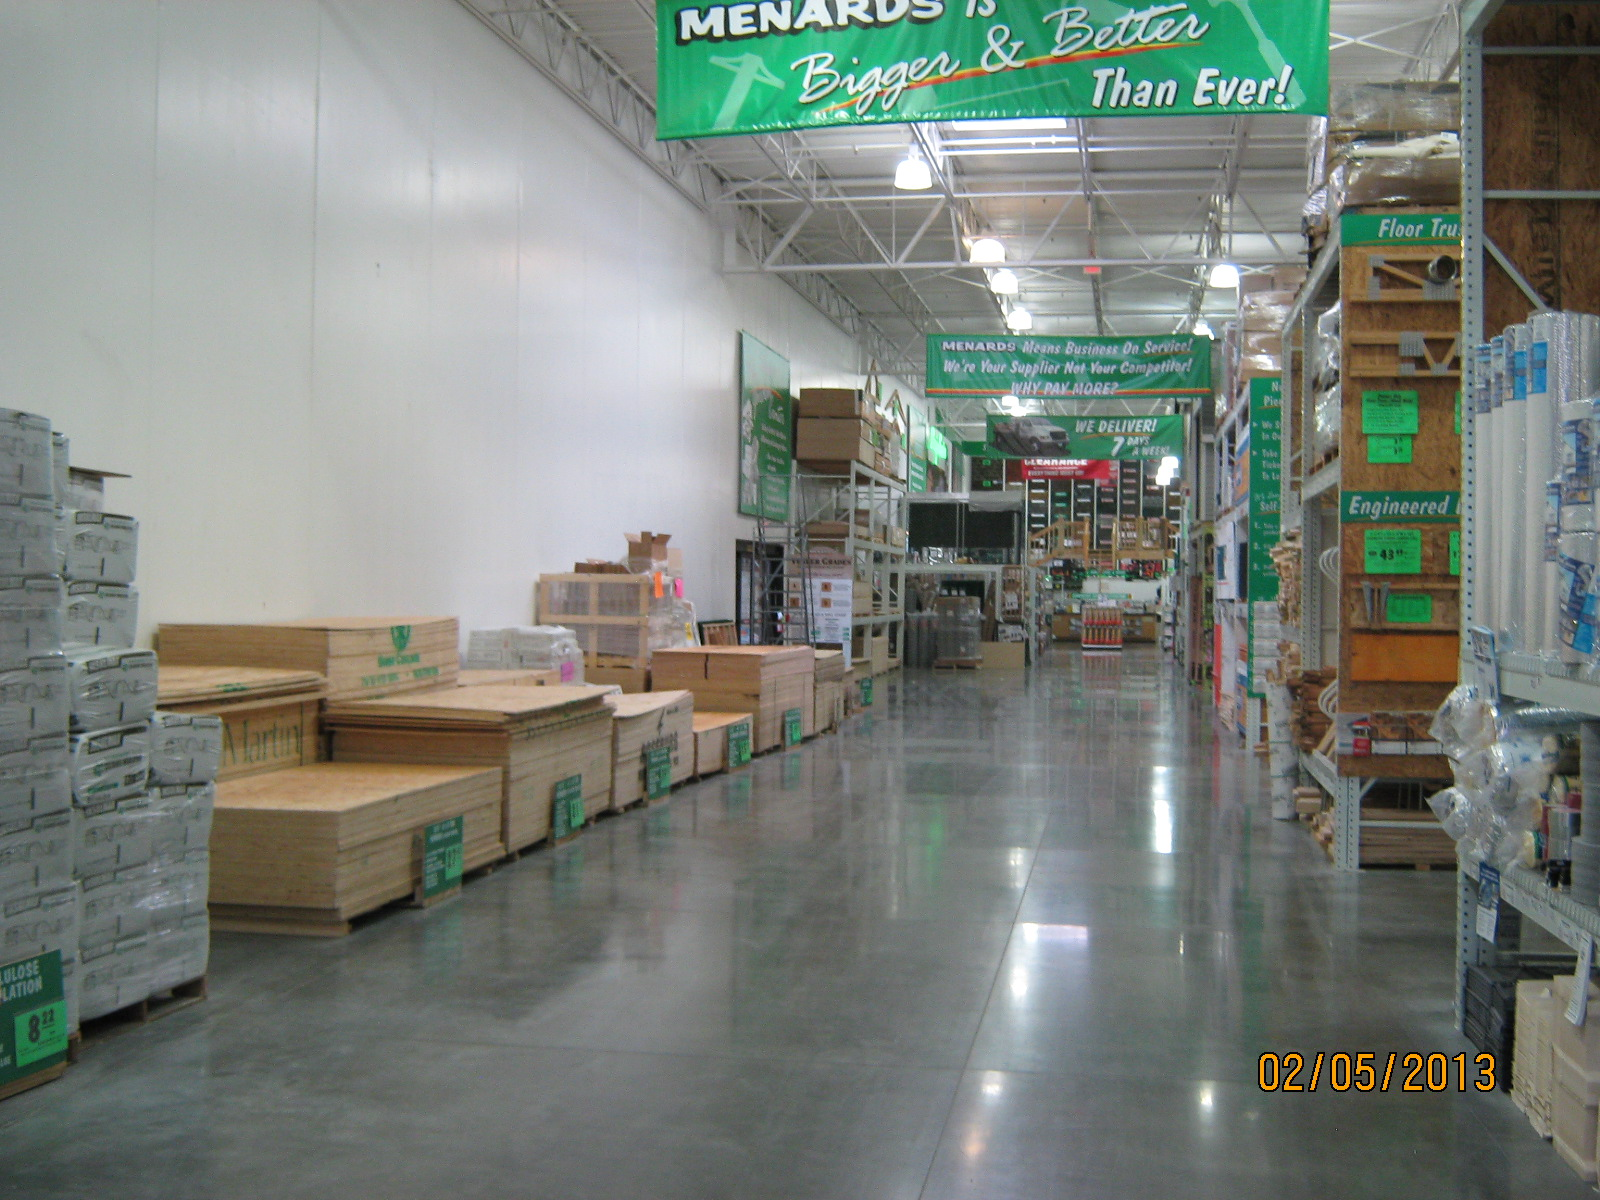 Menards Home Store Coming To Cheyenne April Charlie Kay Home - Does menards deliver